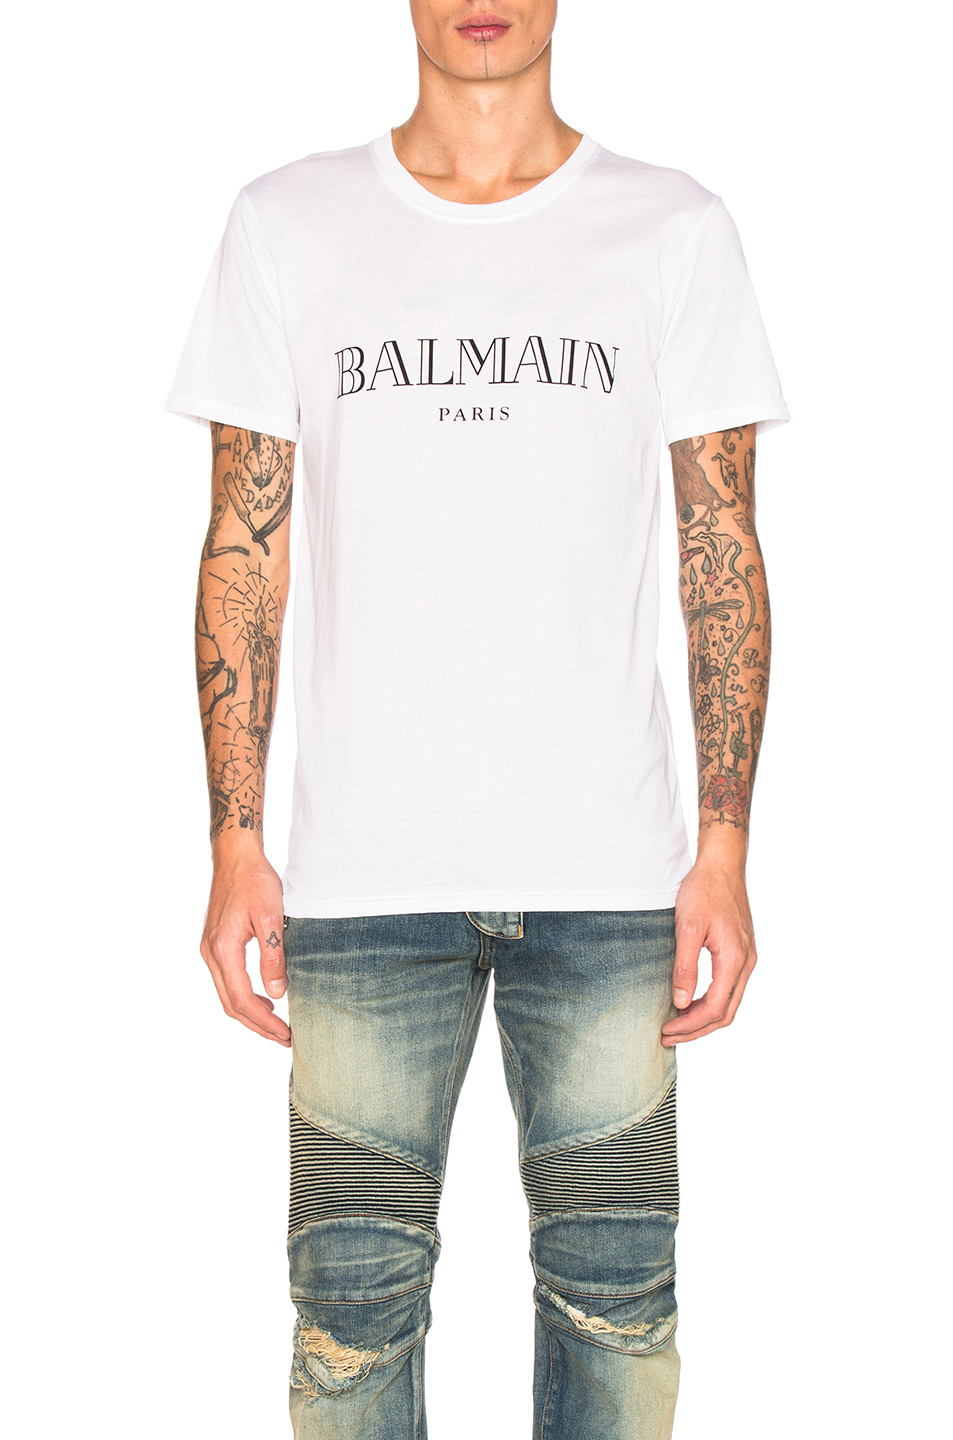 Photo of BALMAIN Logo Tee in White - shop BALMAIN menswear